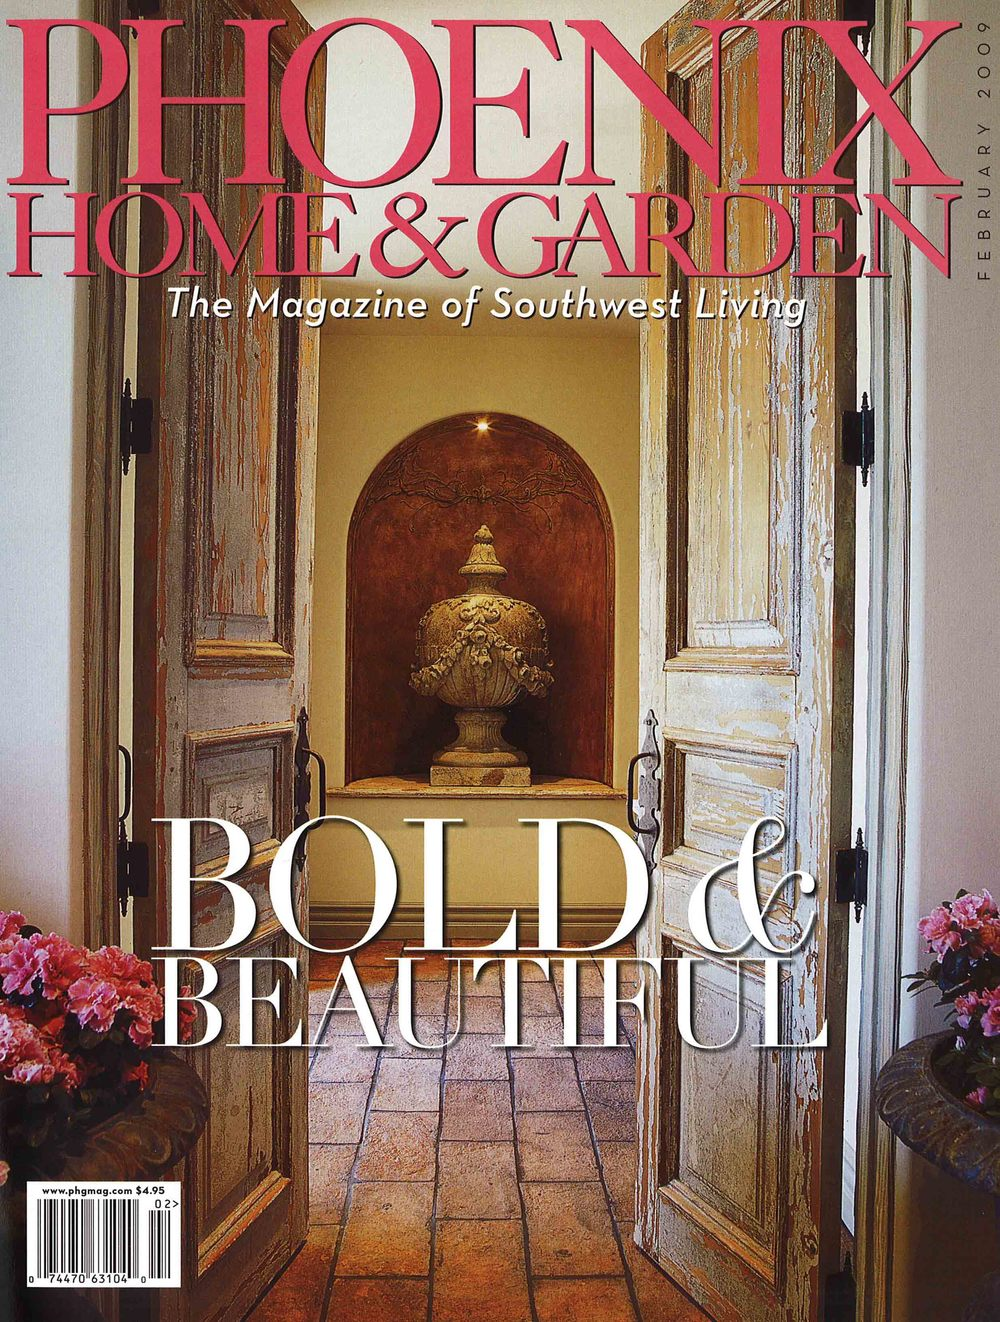 PHGfeb09-Bold & Beautiful cover 72.jpg